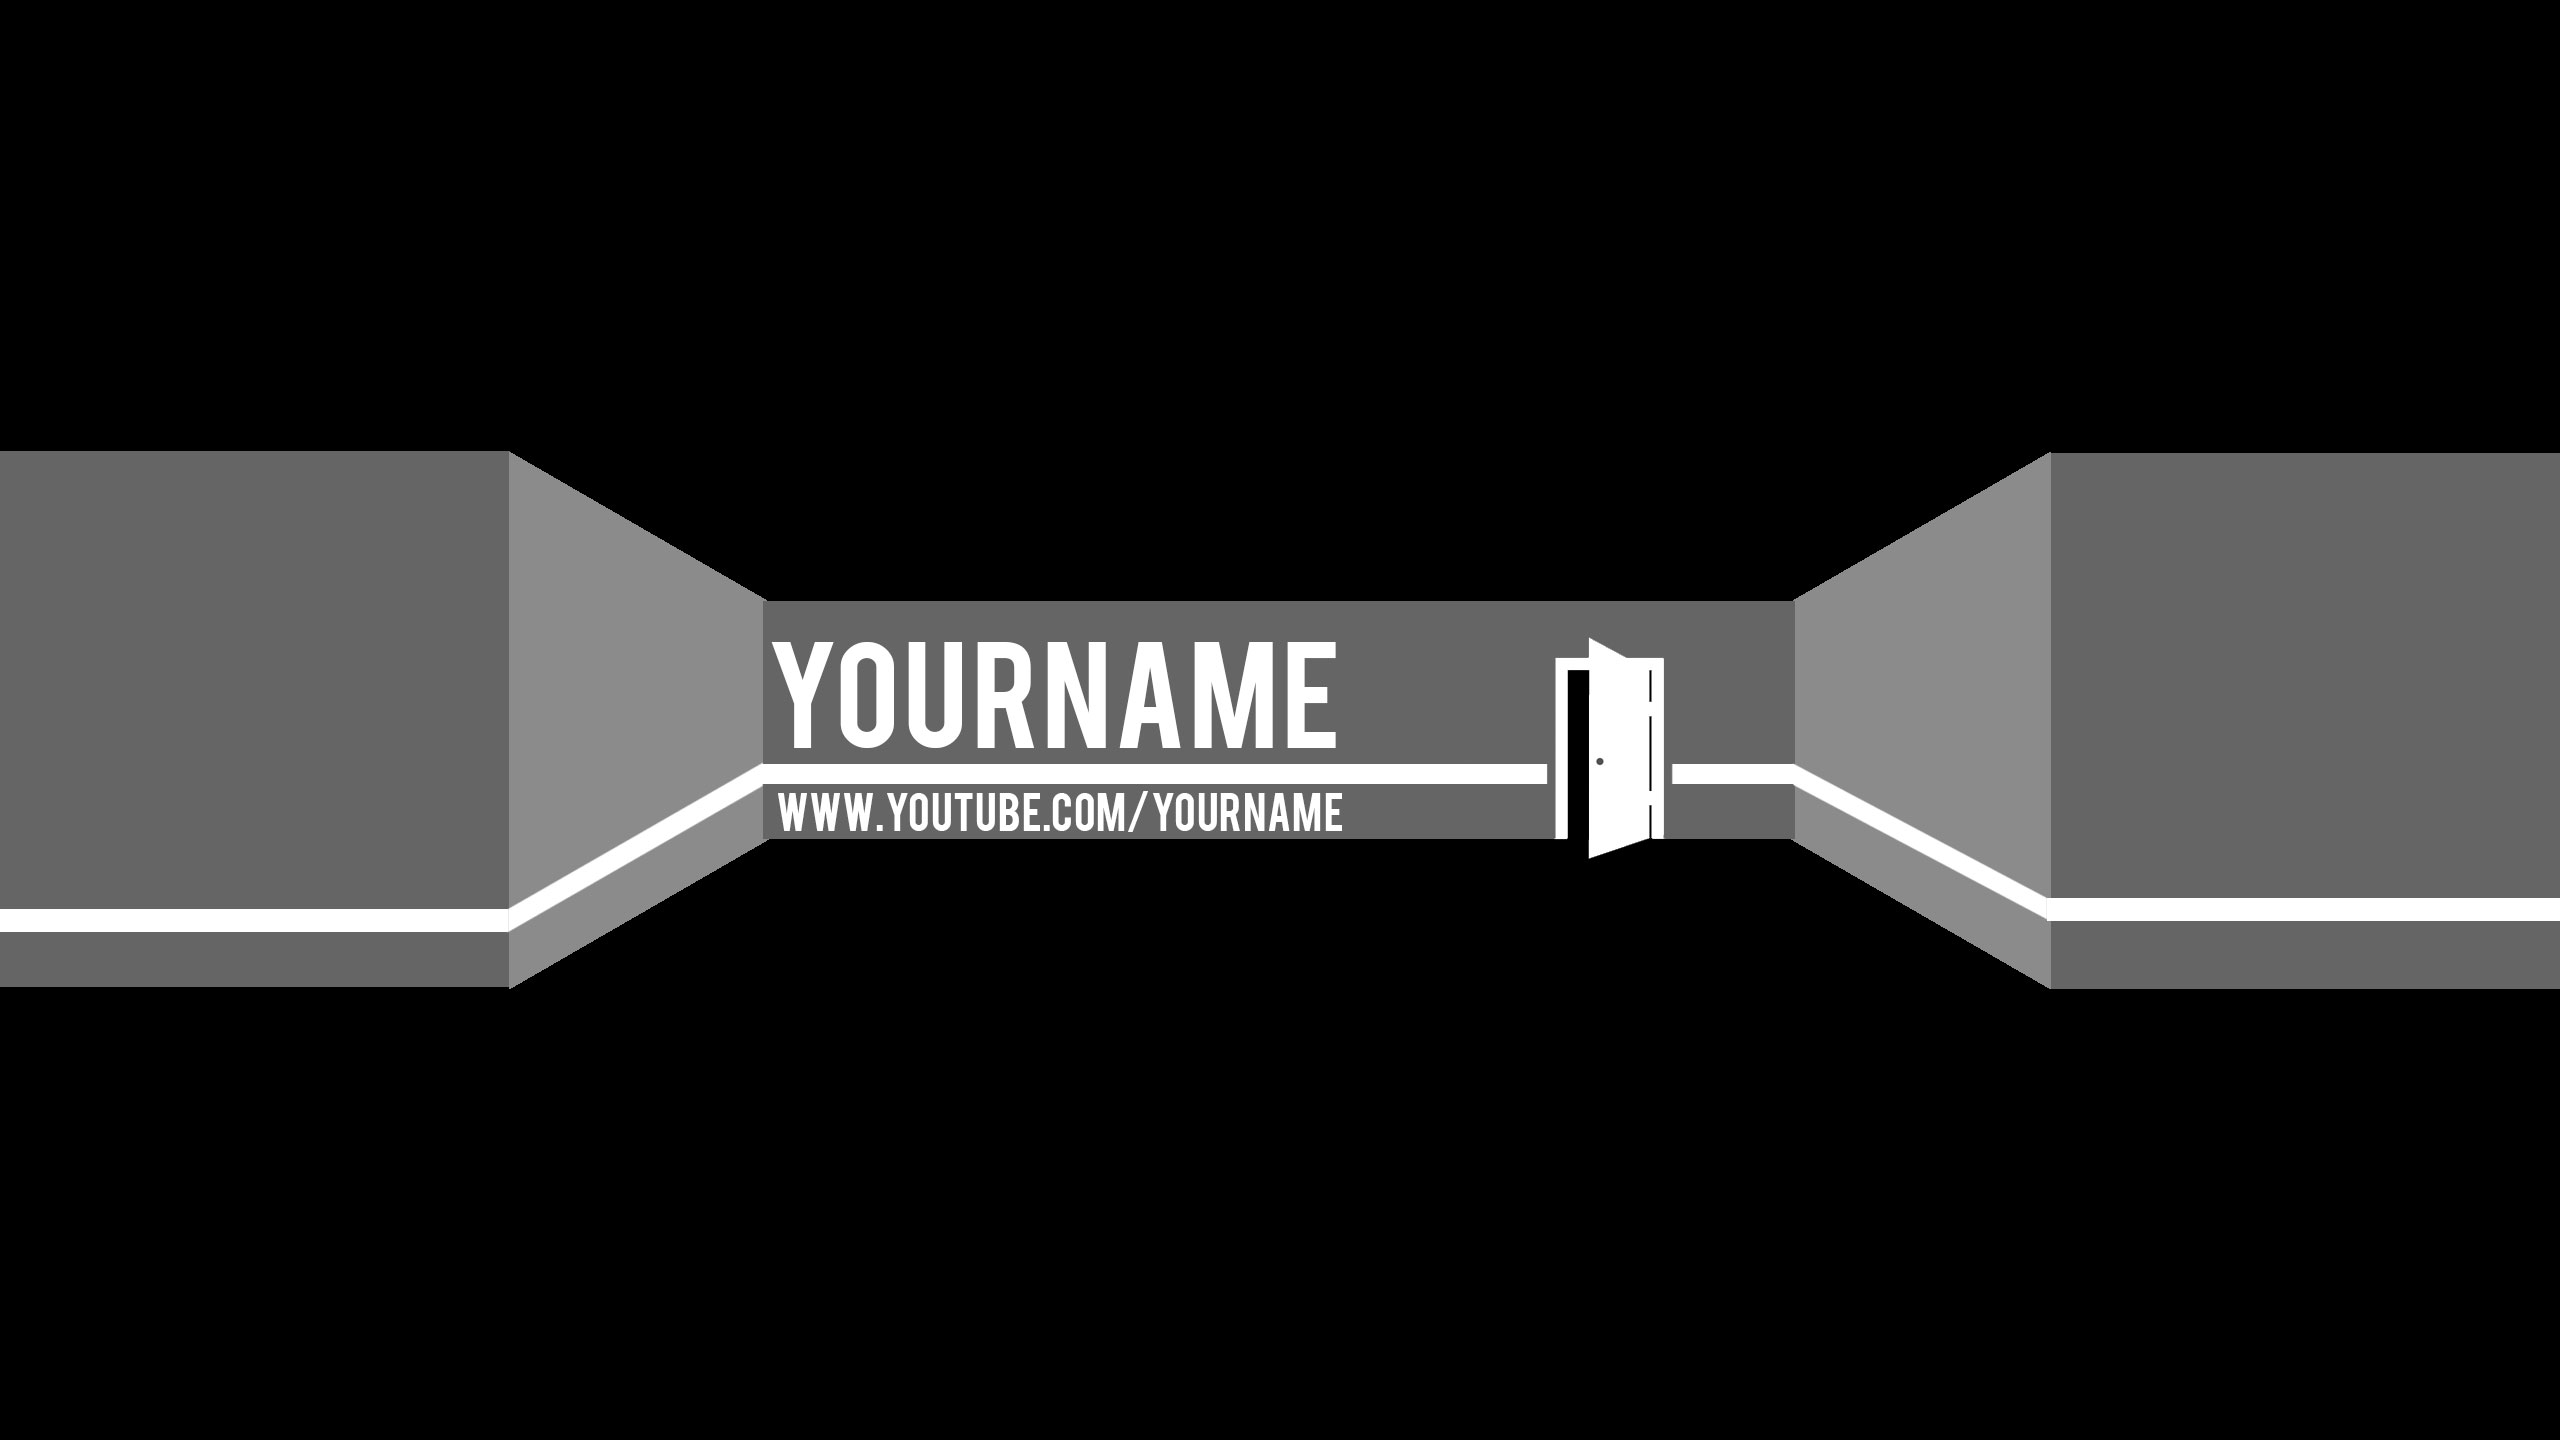 Welcome youtube banner template by bulbasuer on deviantart welcome youtube banner template by bulbasuer welcome youtube banner template by bulbasuer pronofoot35fo Image collections